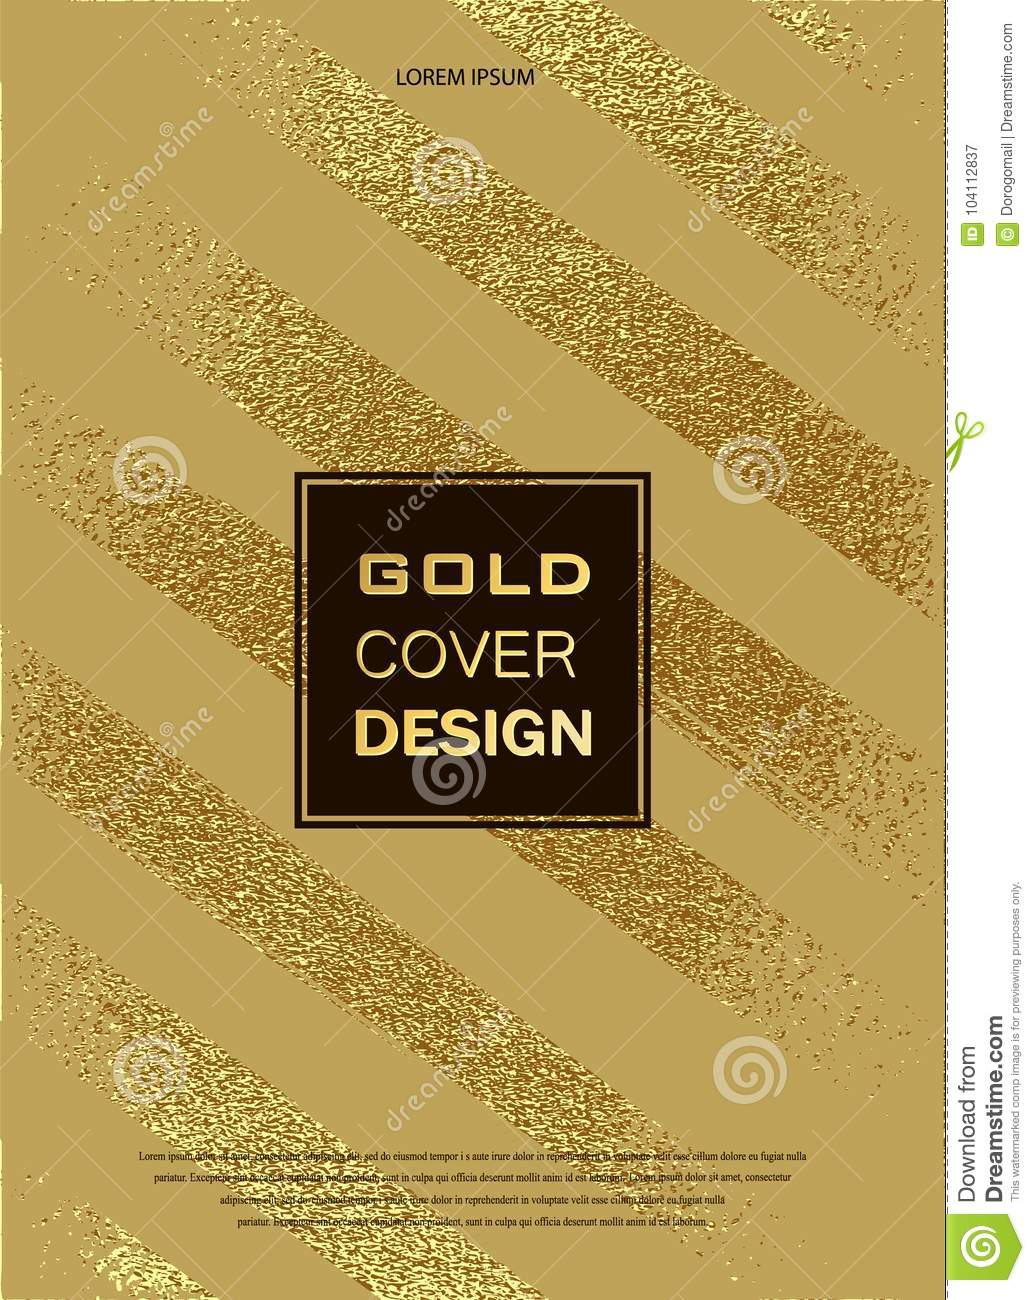 download gold glitter sparkles design template for brochures invitation for new year